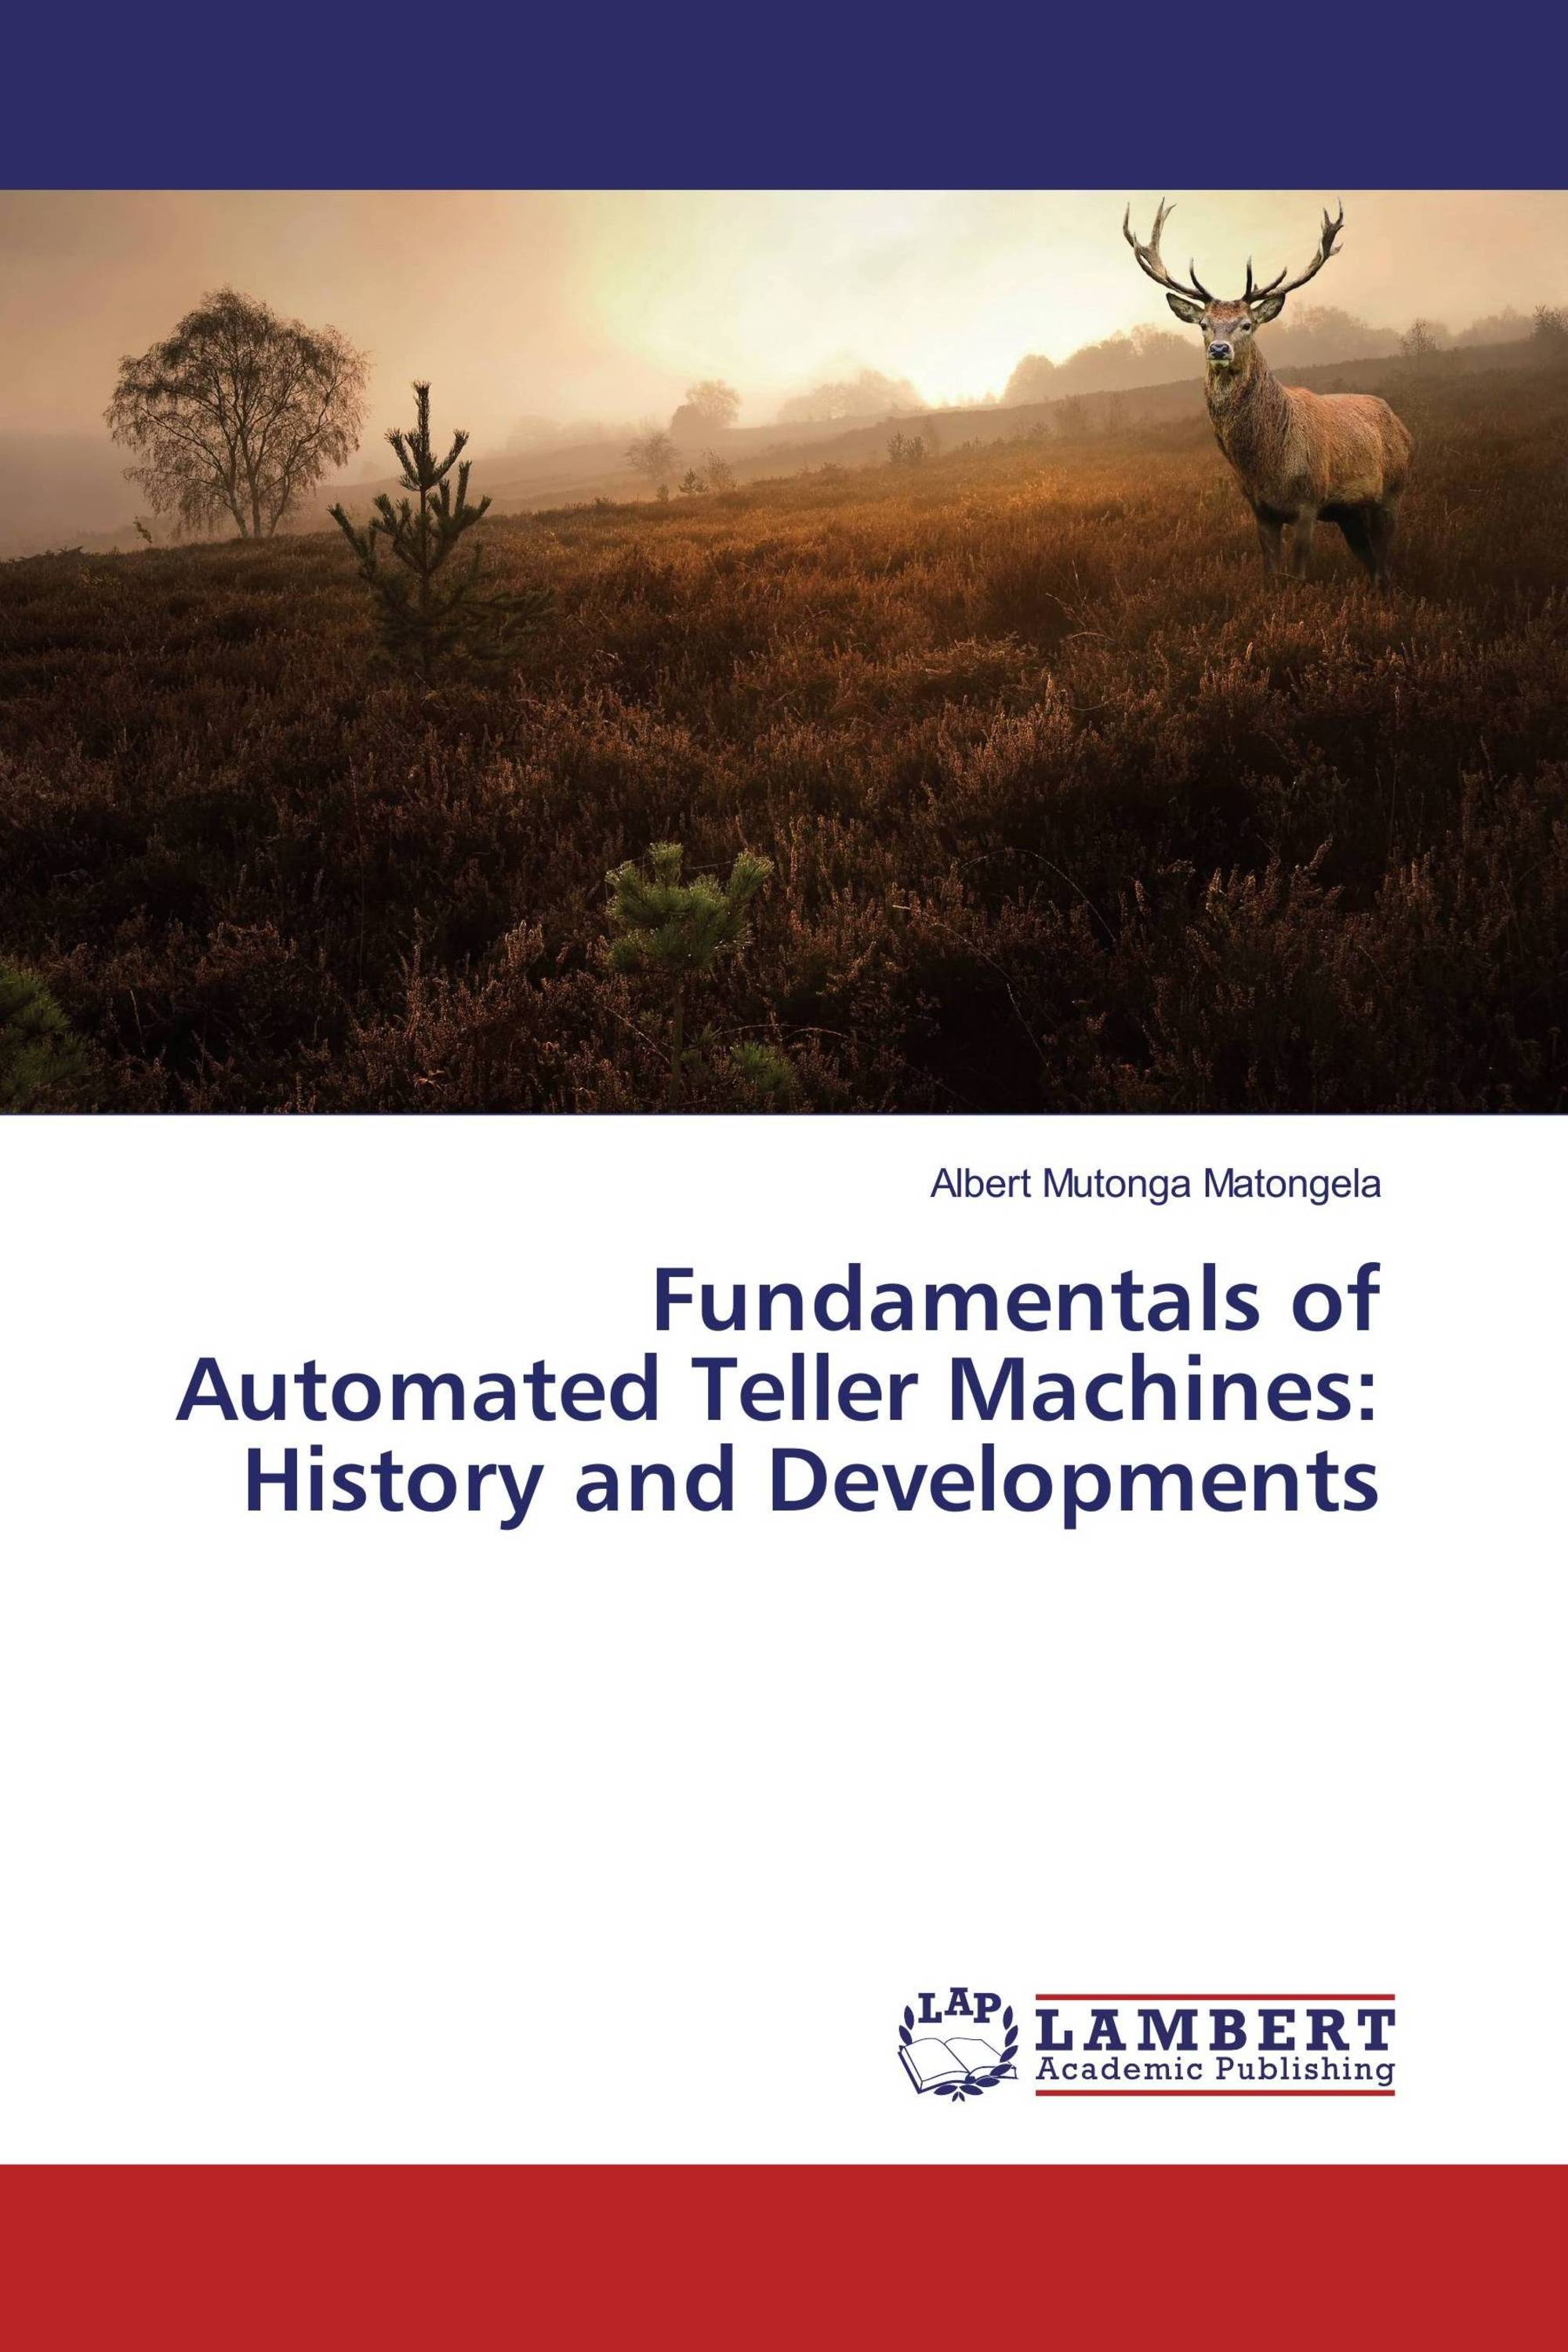 Fundamentals of Automated Teller Machines: History and Developments